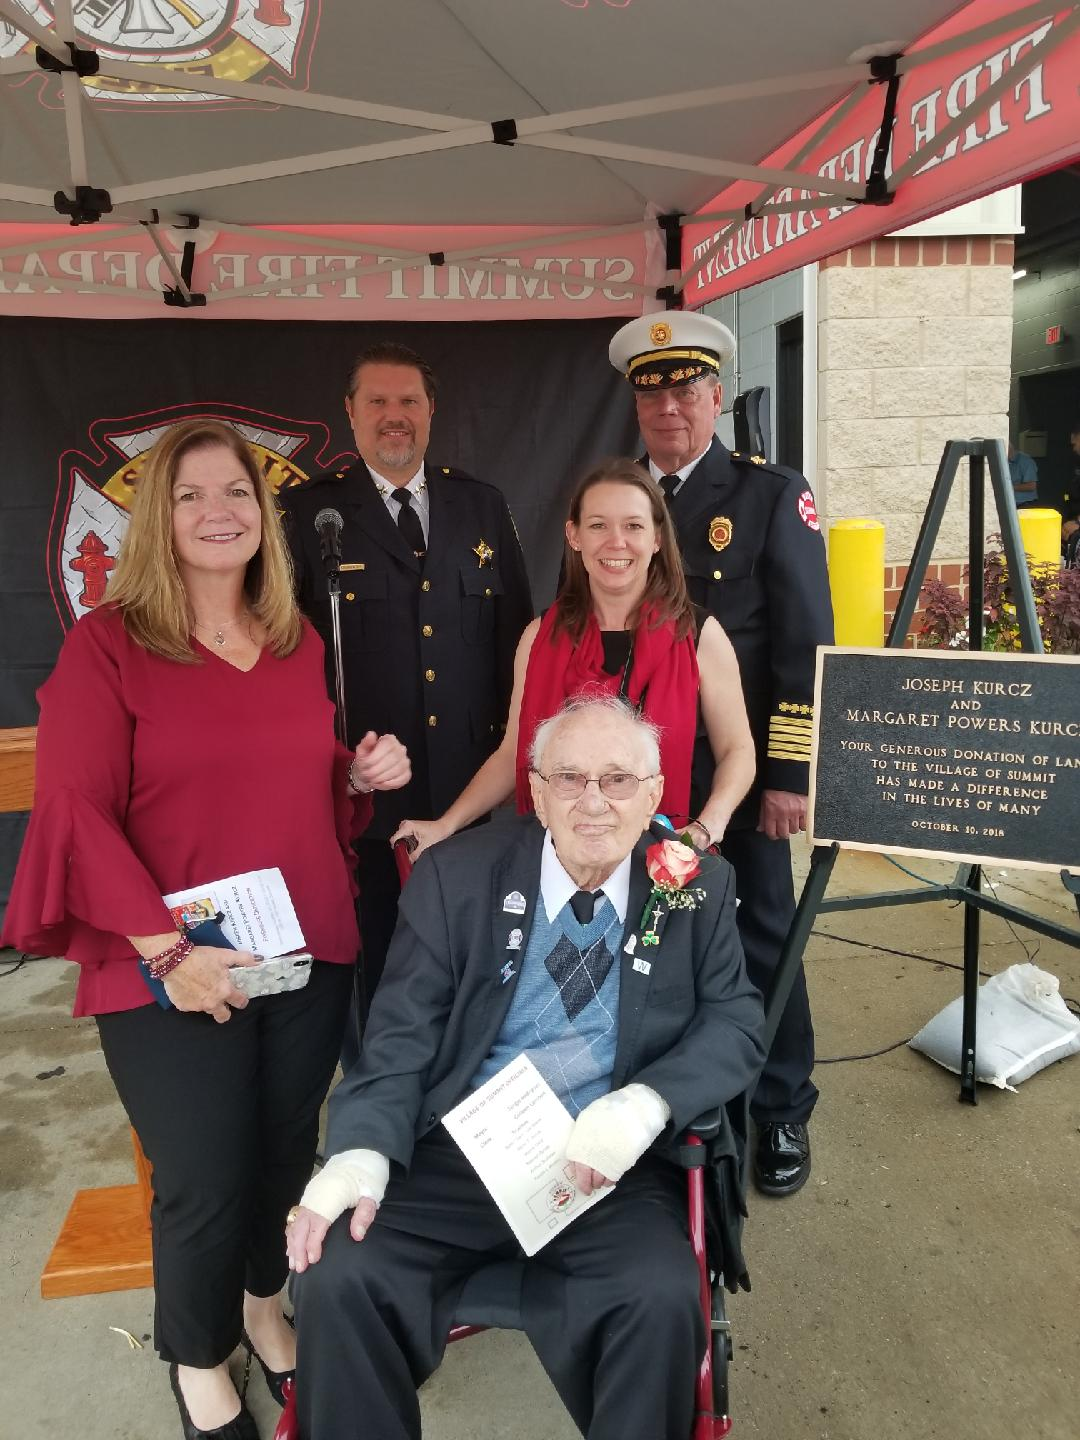 Summit Police and Fire Chiefs and Joseph Kurcz and family